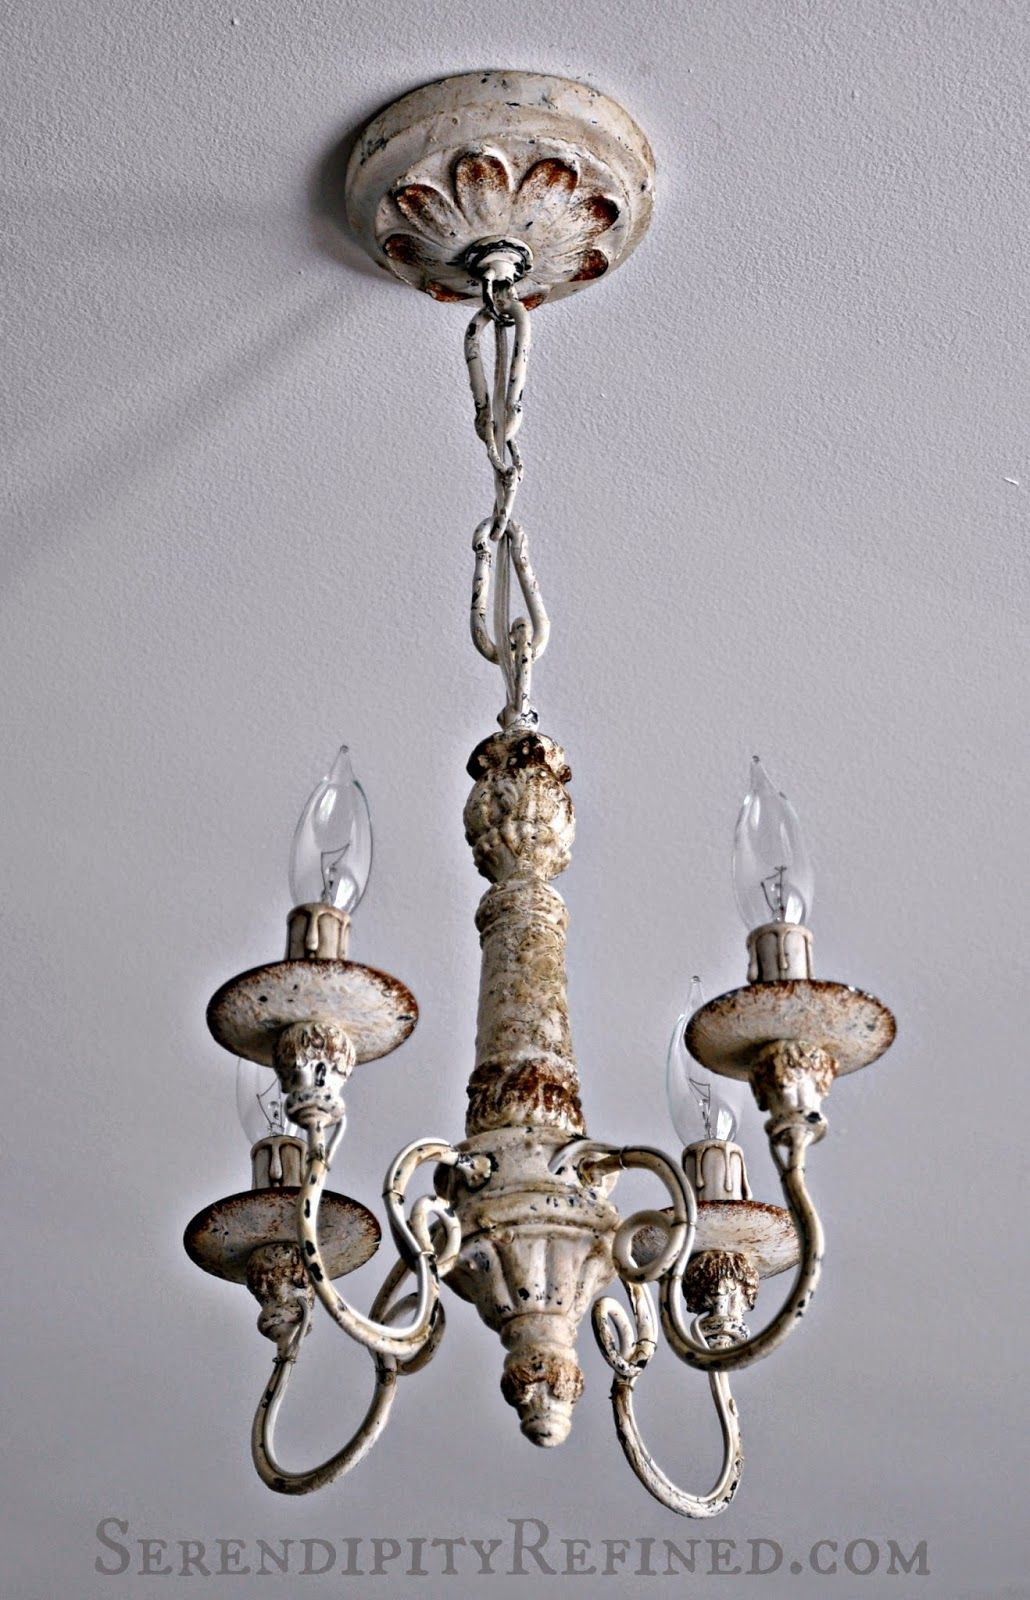 Serendipity Refined French Country Light Fixtures For The